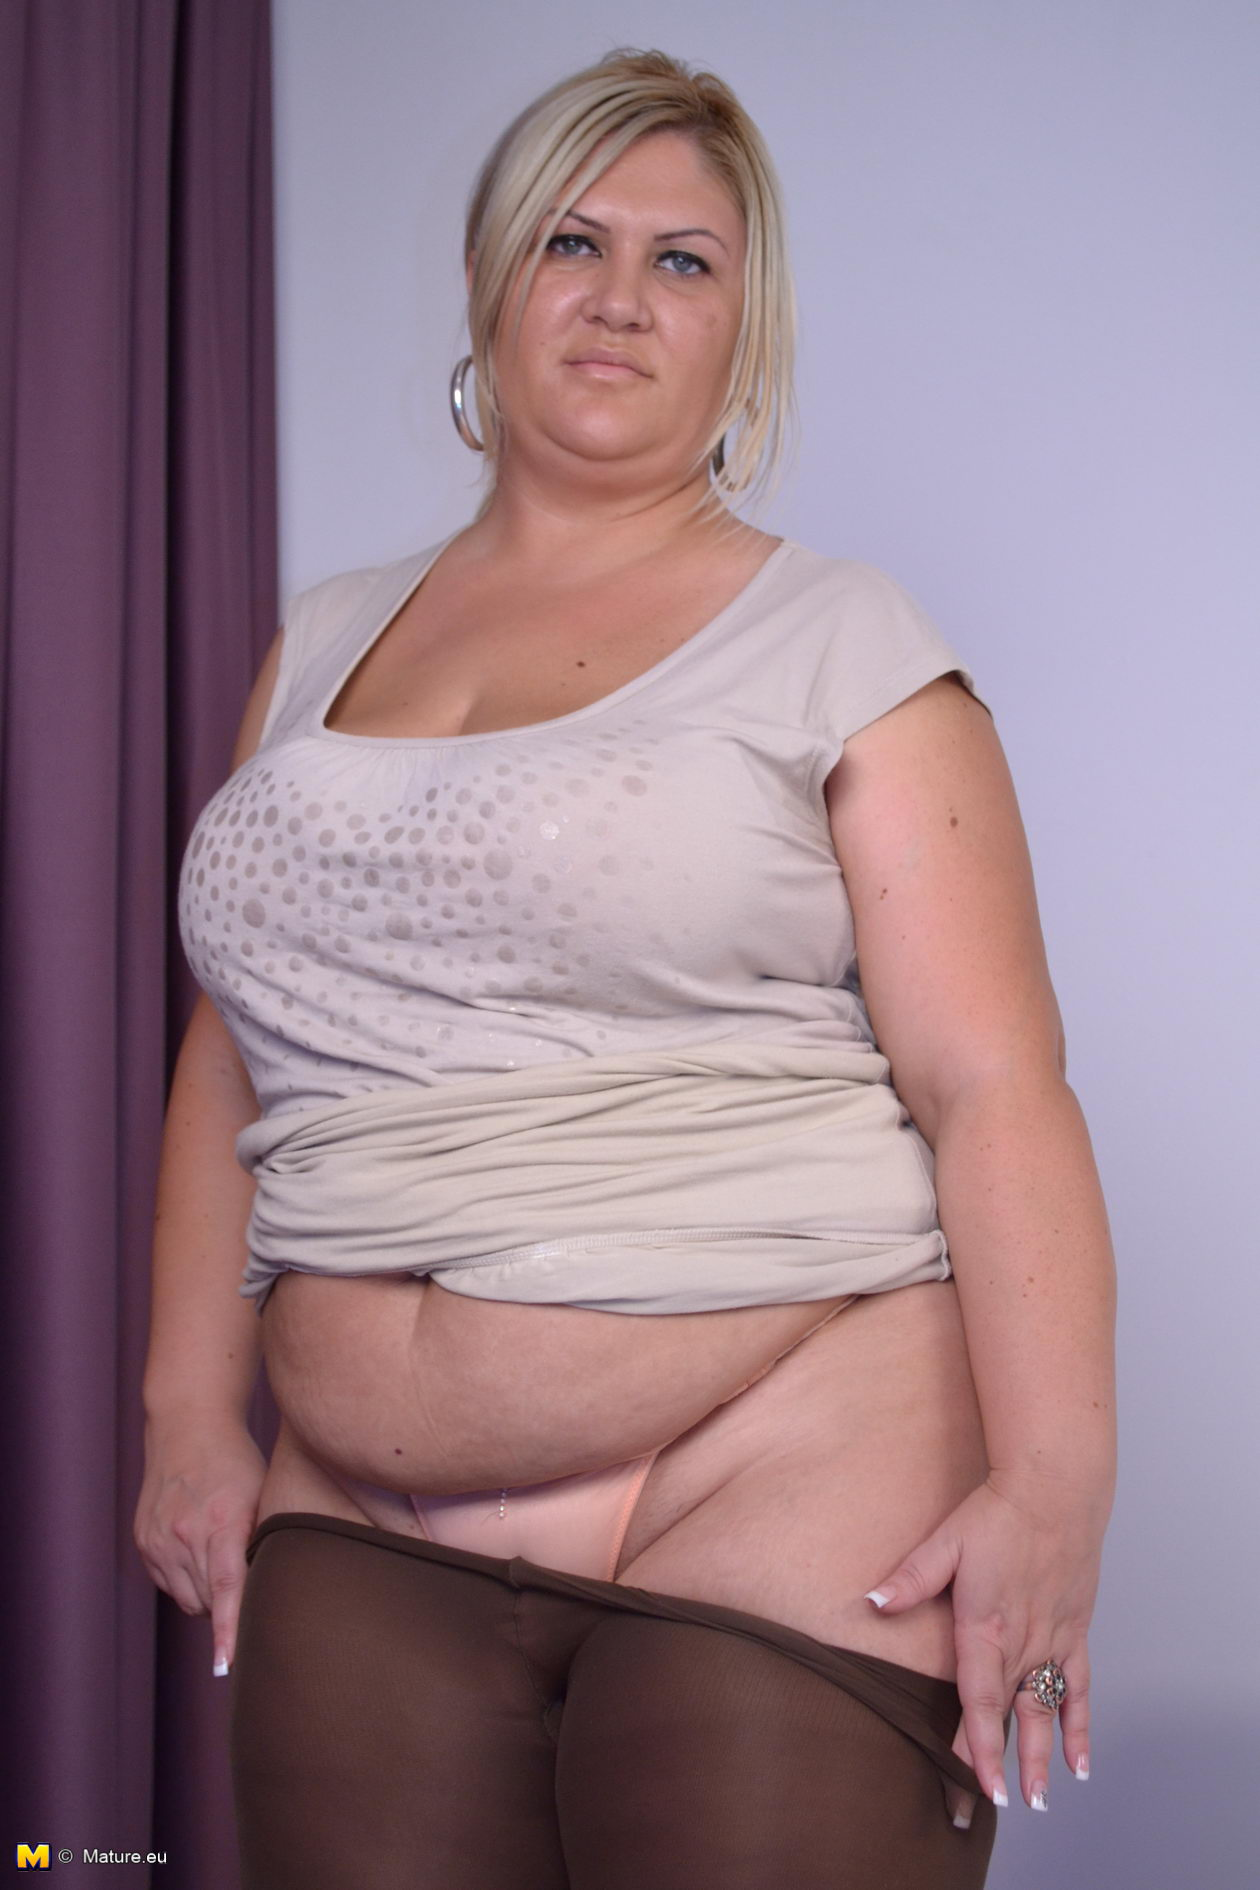 Fat chubby bbw mature mother mom fucked hard 1